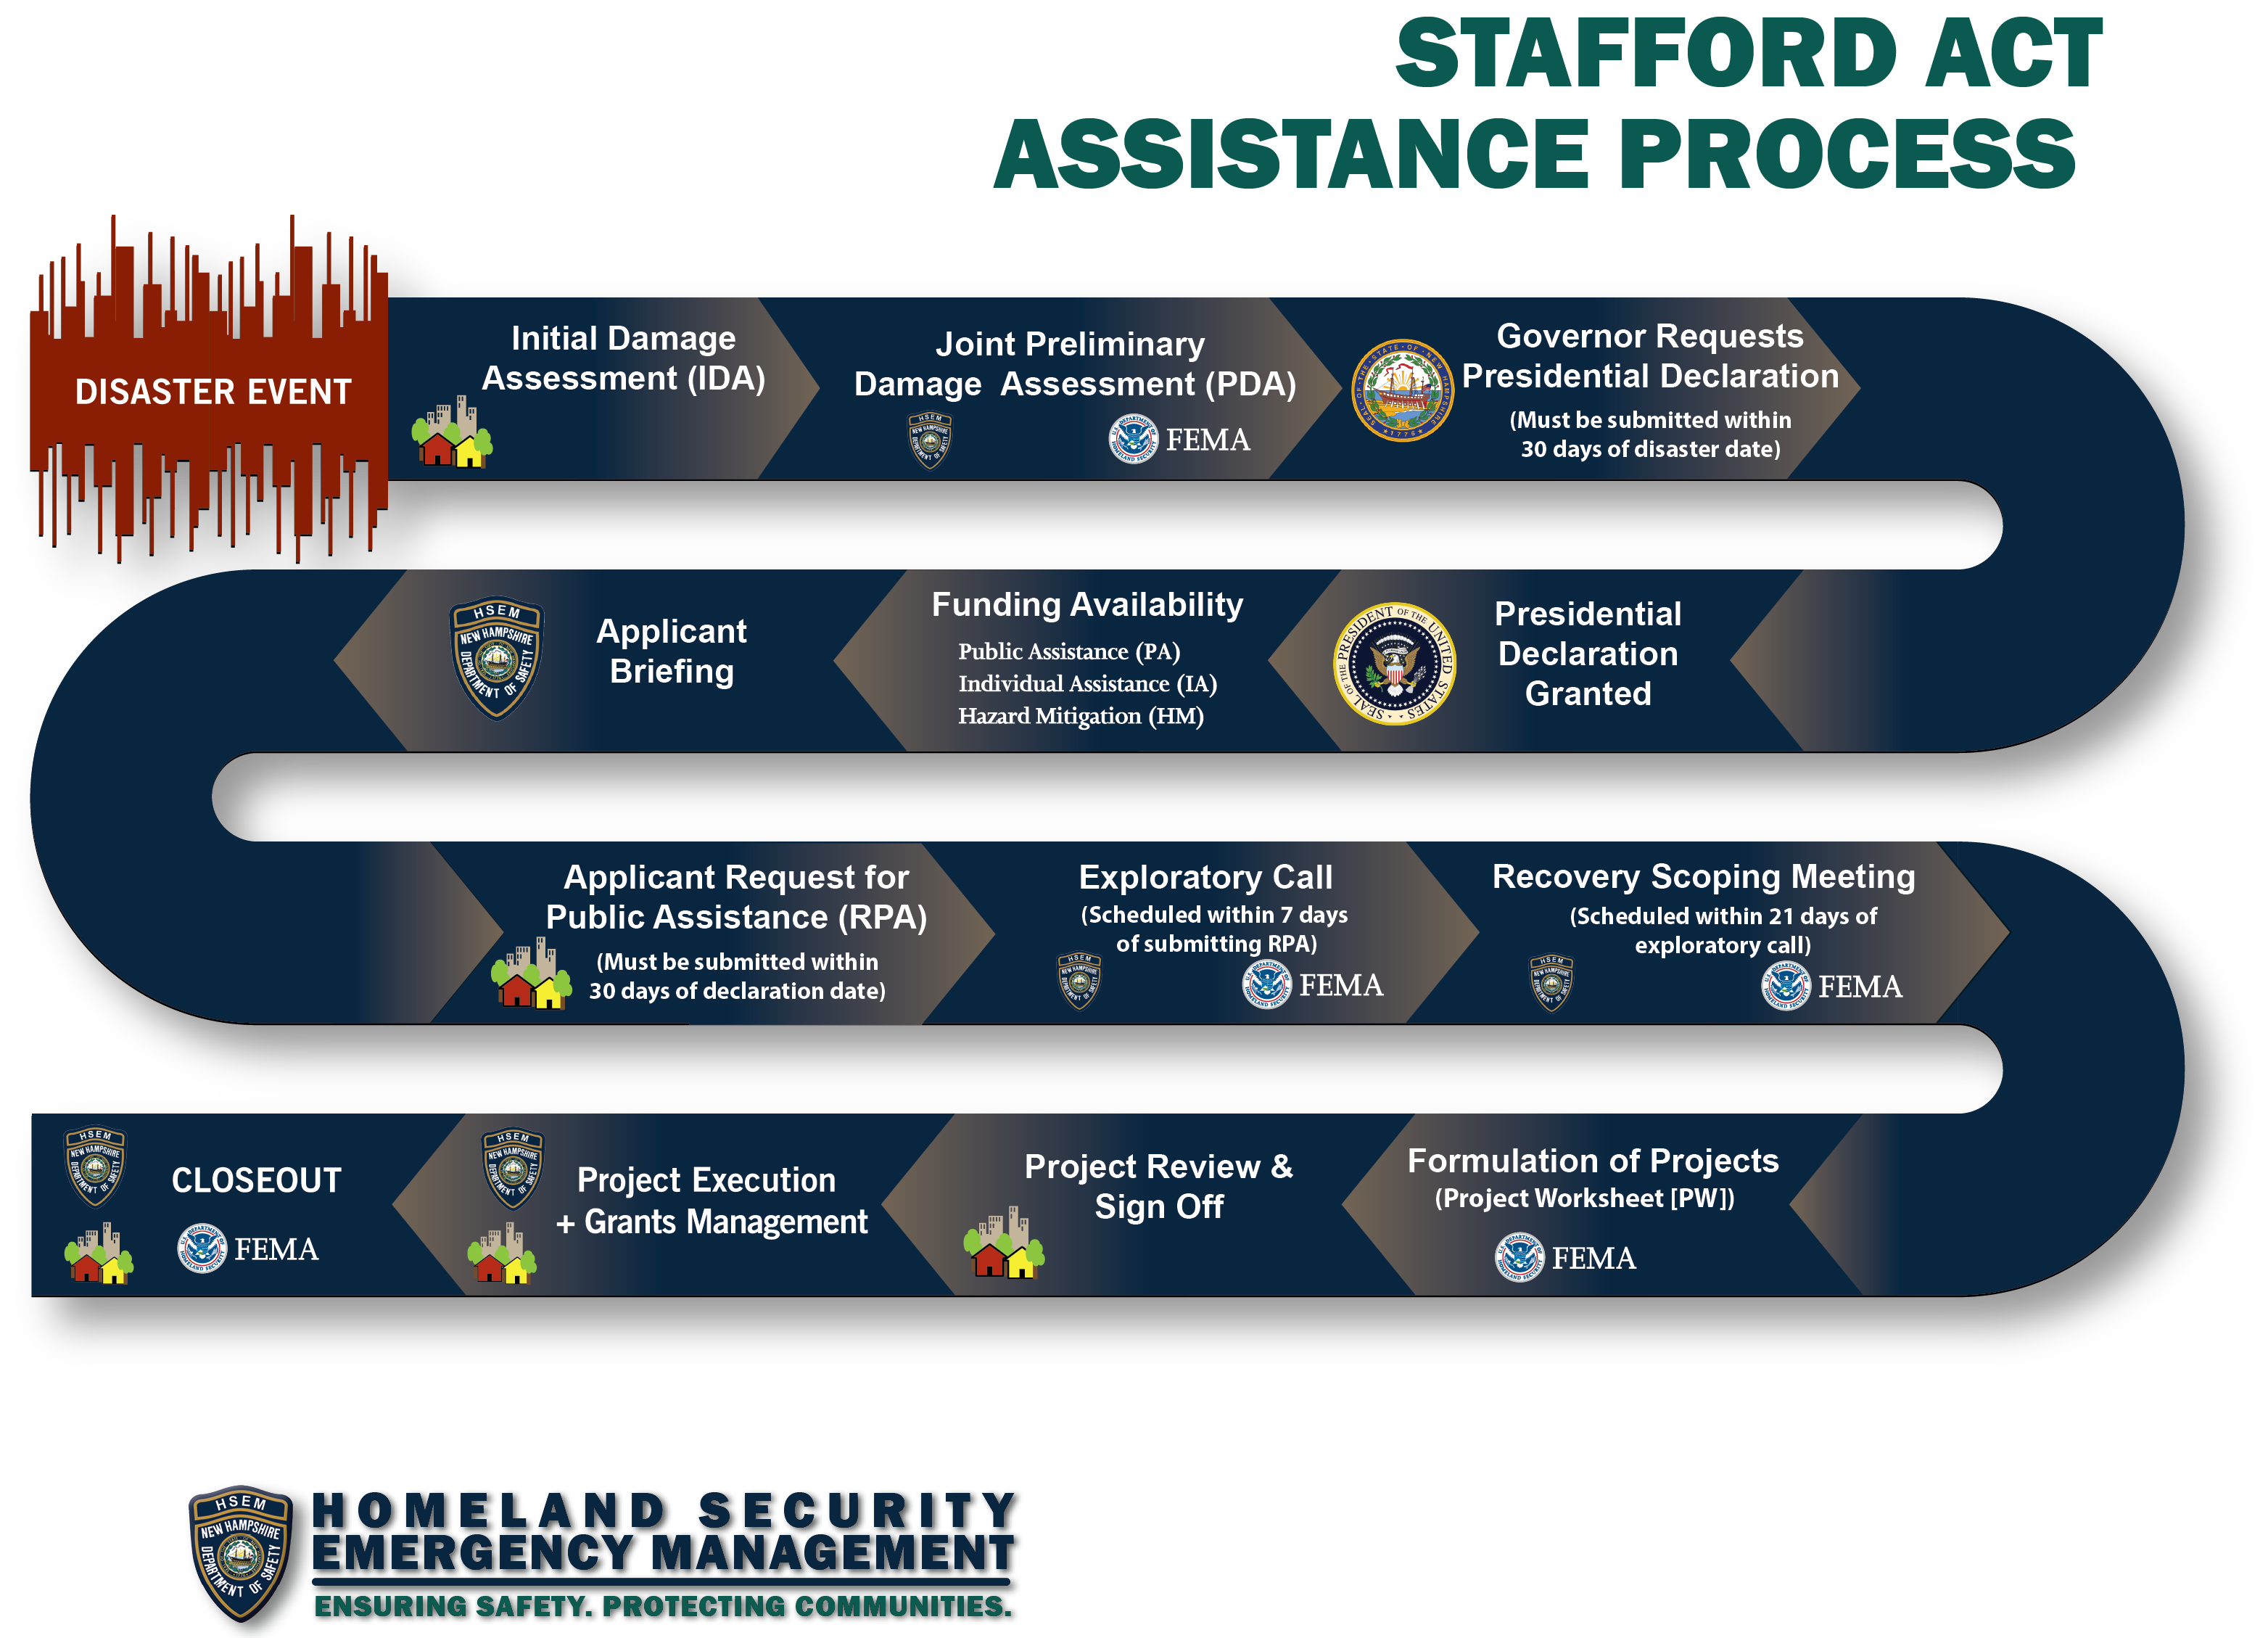 Disasters / Incidents – Homeland Security Emergency Management